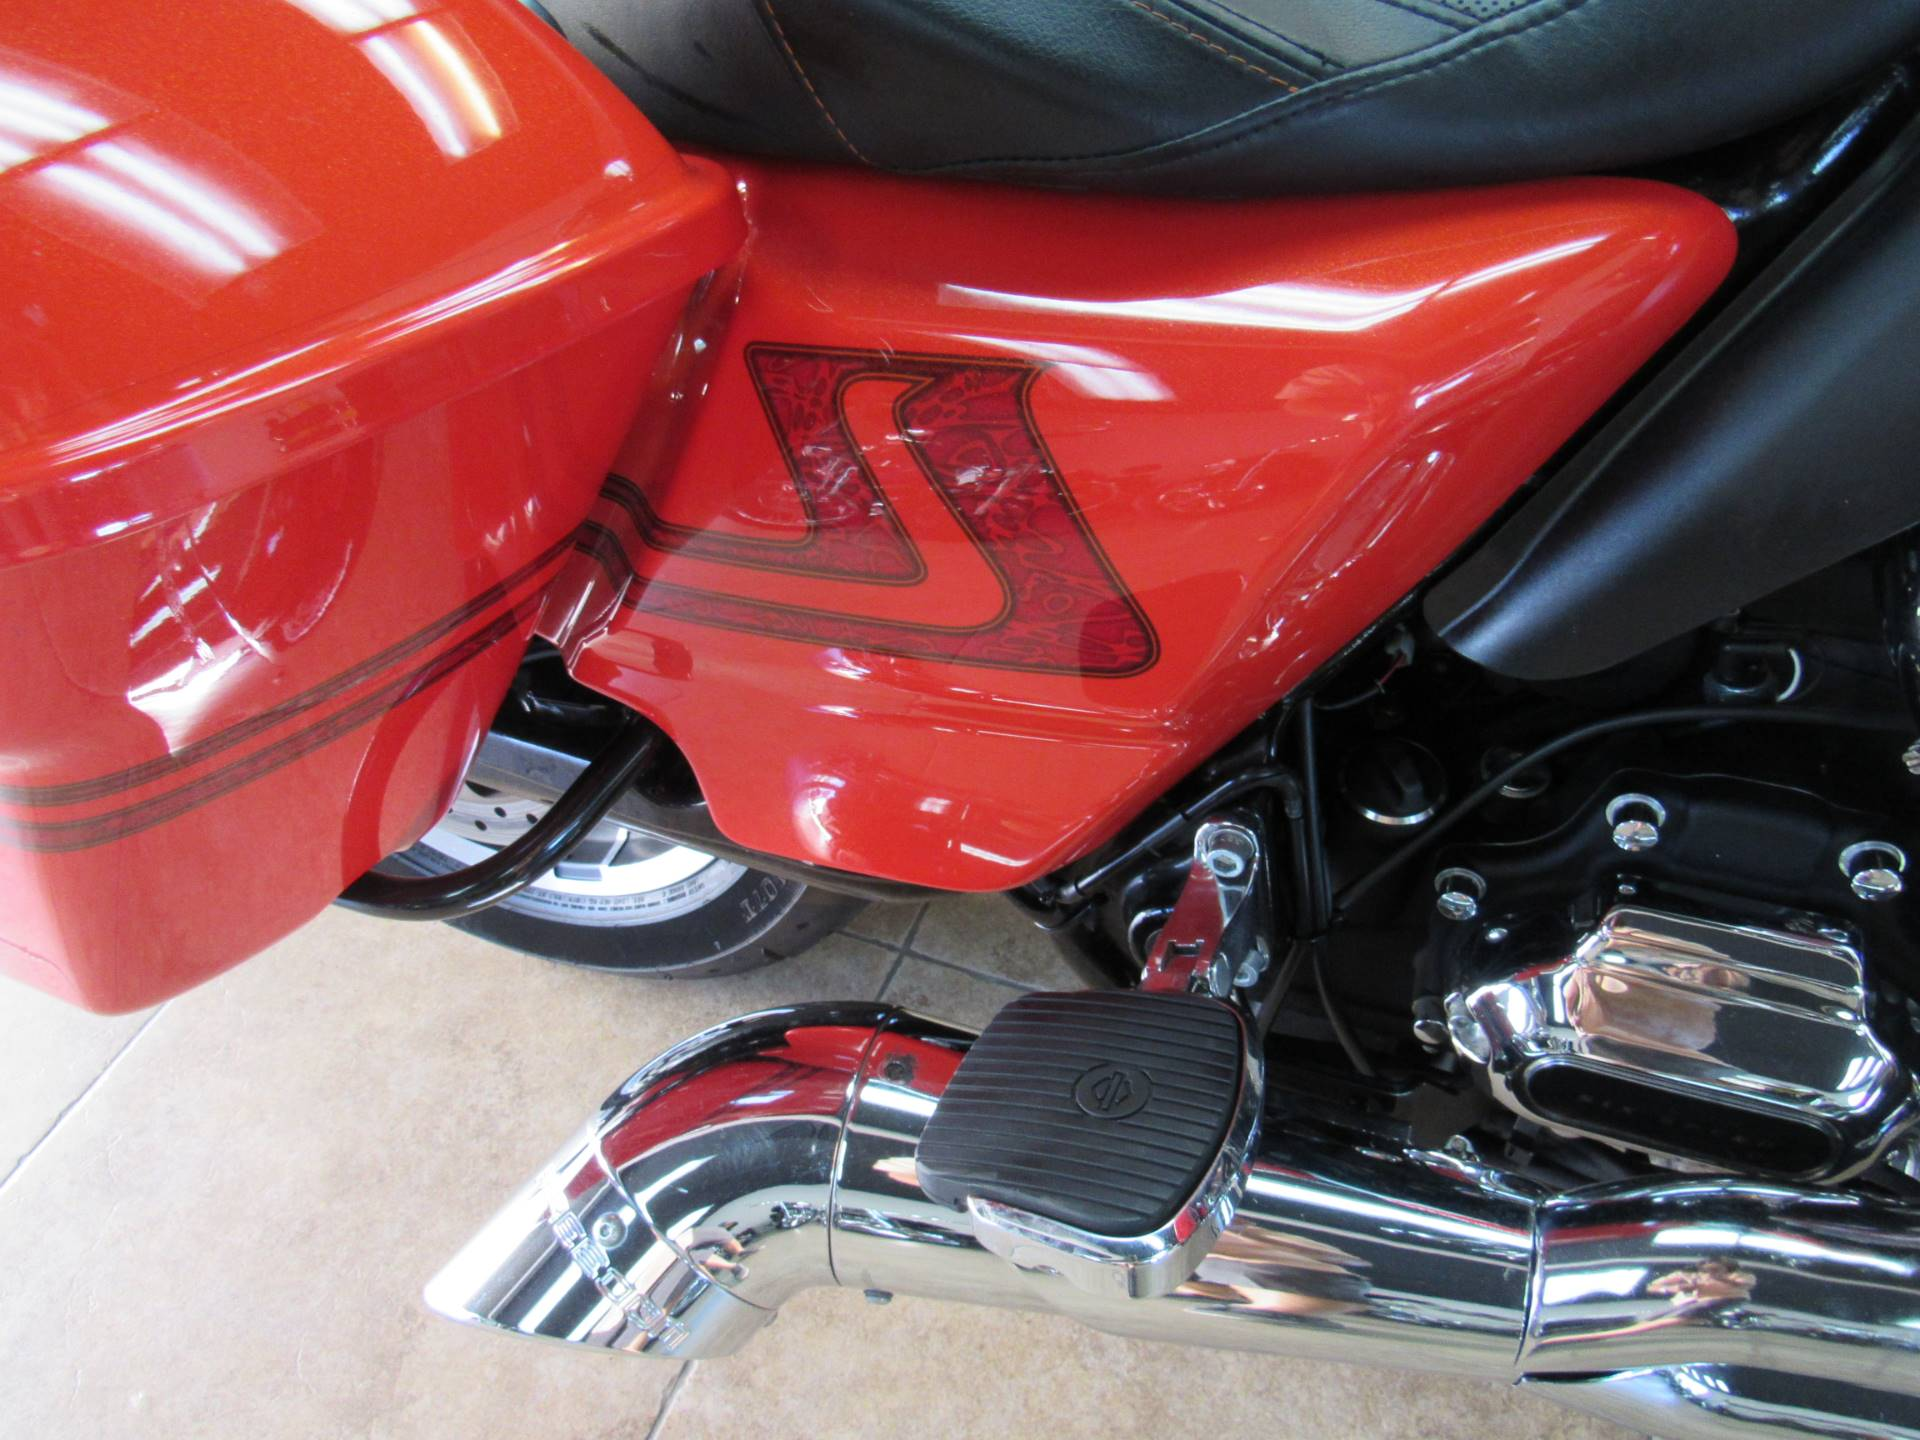 2017 Harley-Davidson Road Glide® Special in Temecula, California - Photo 20